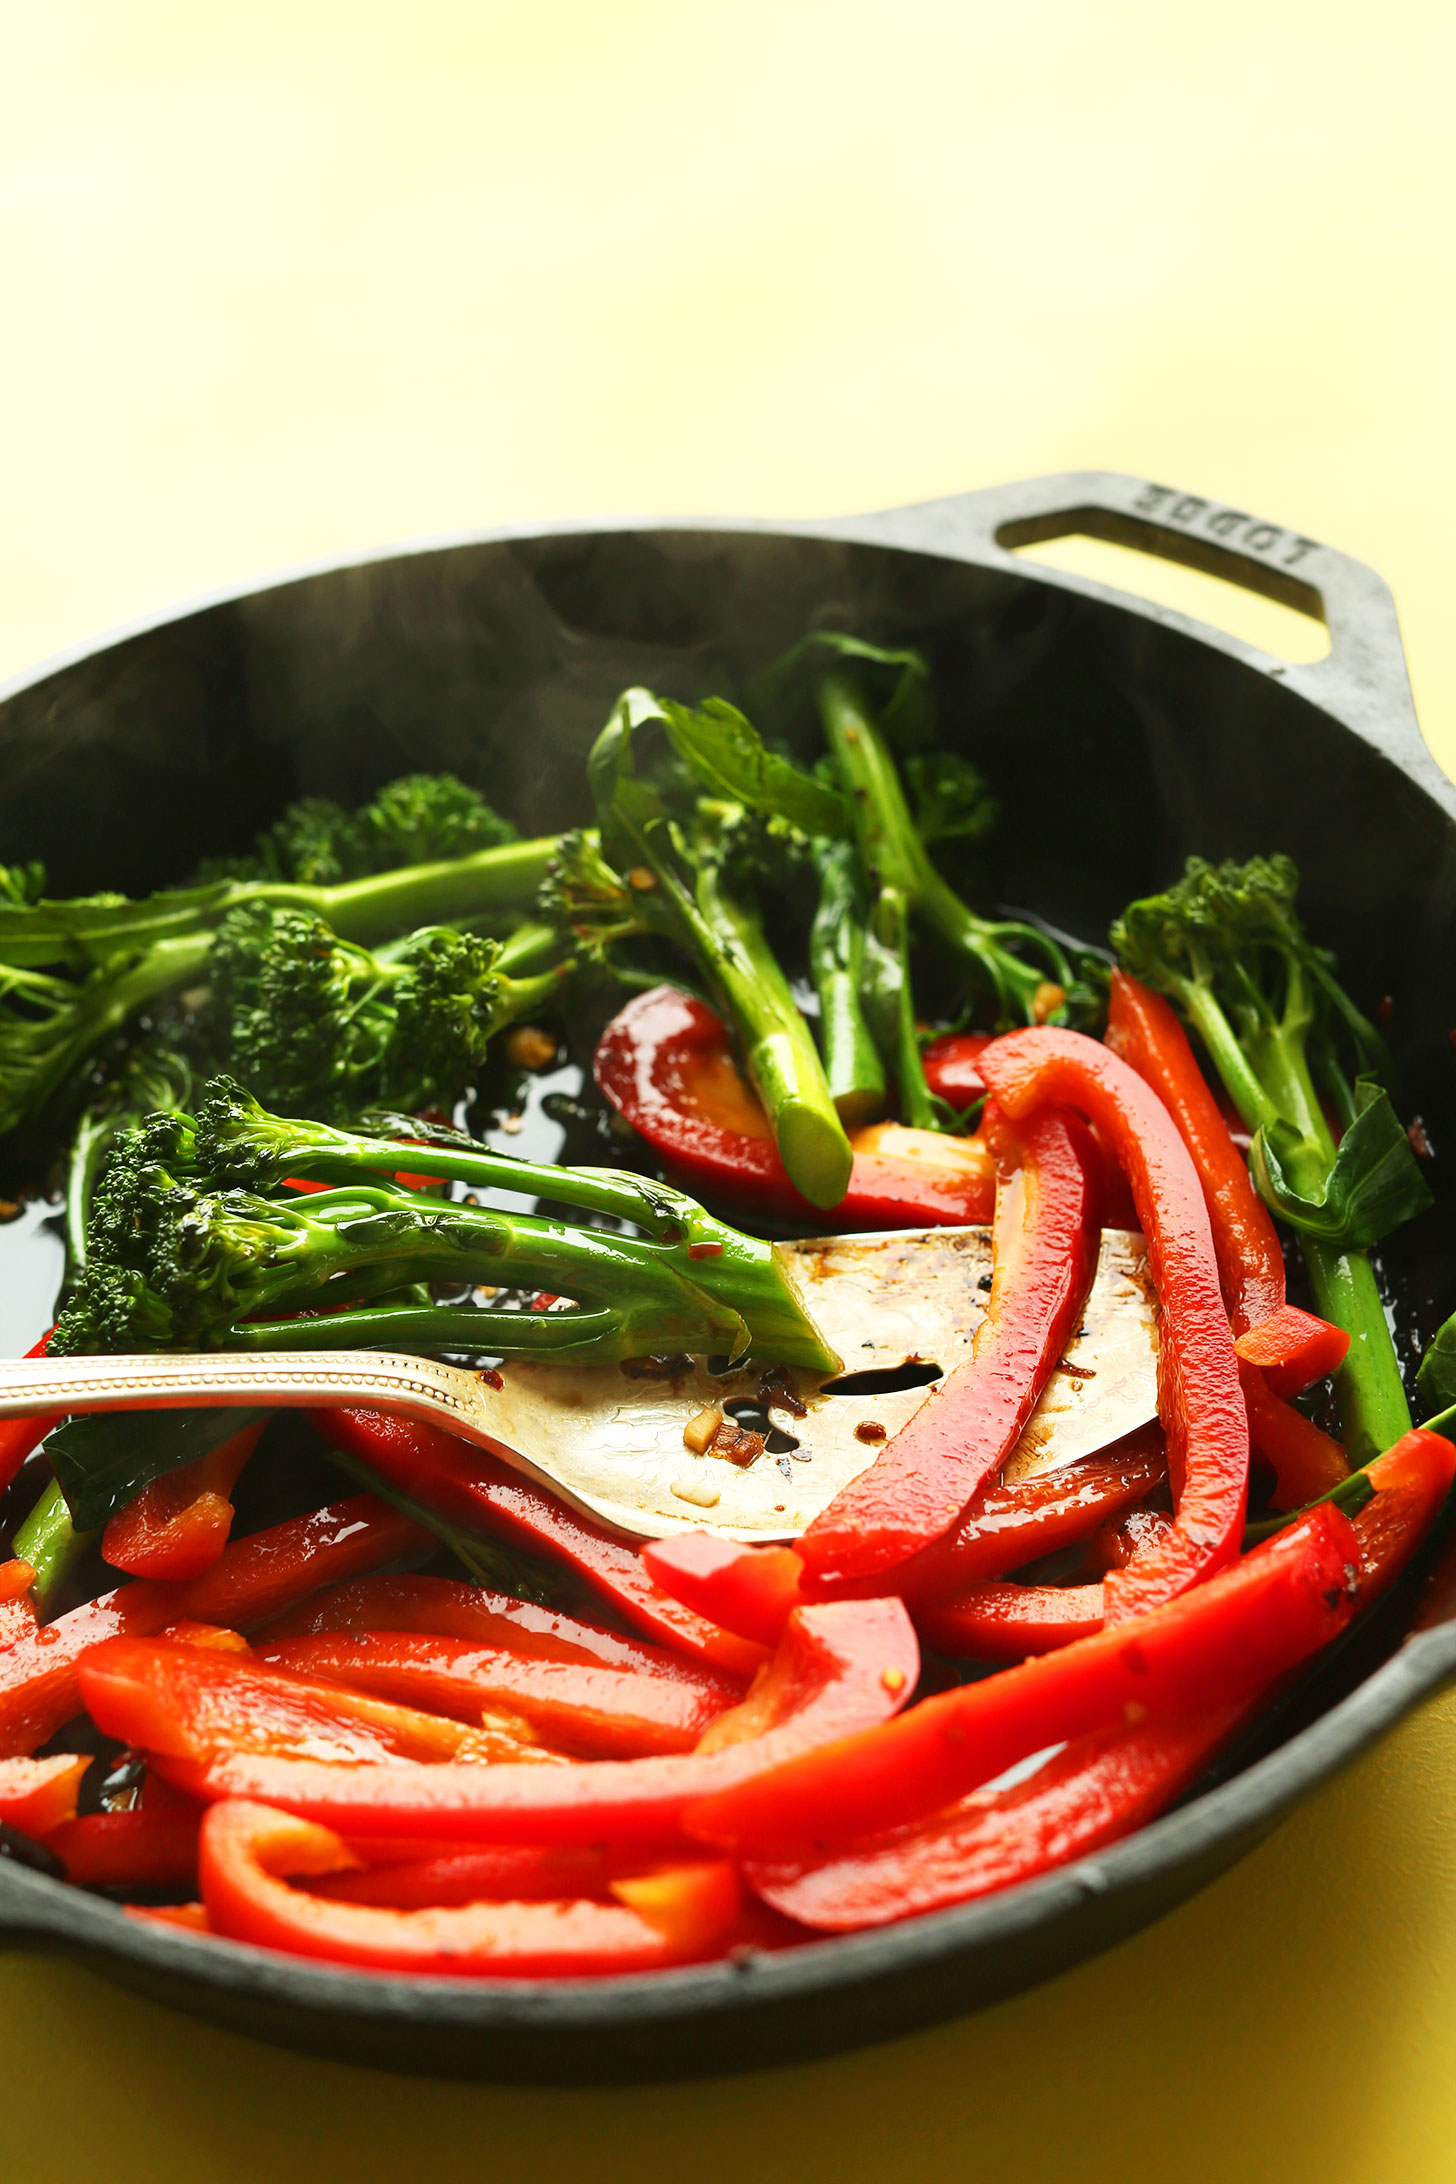 Cooking bell peppers and broccolini for a healthy vegan stir fry